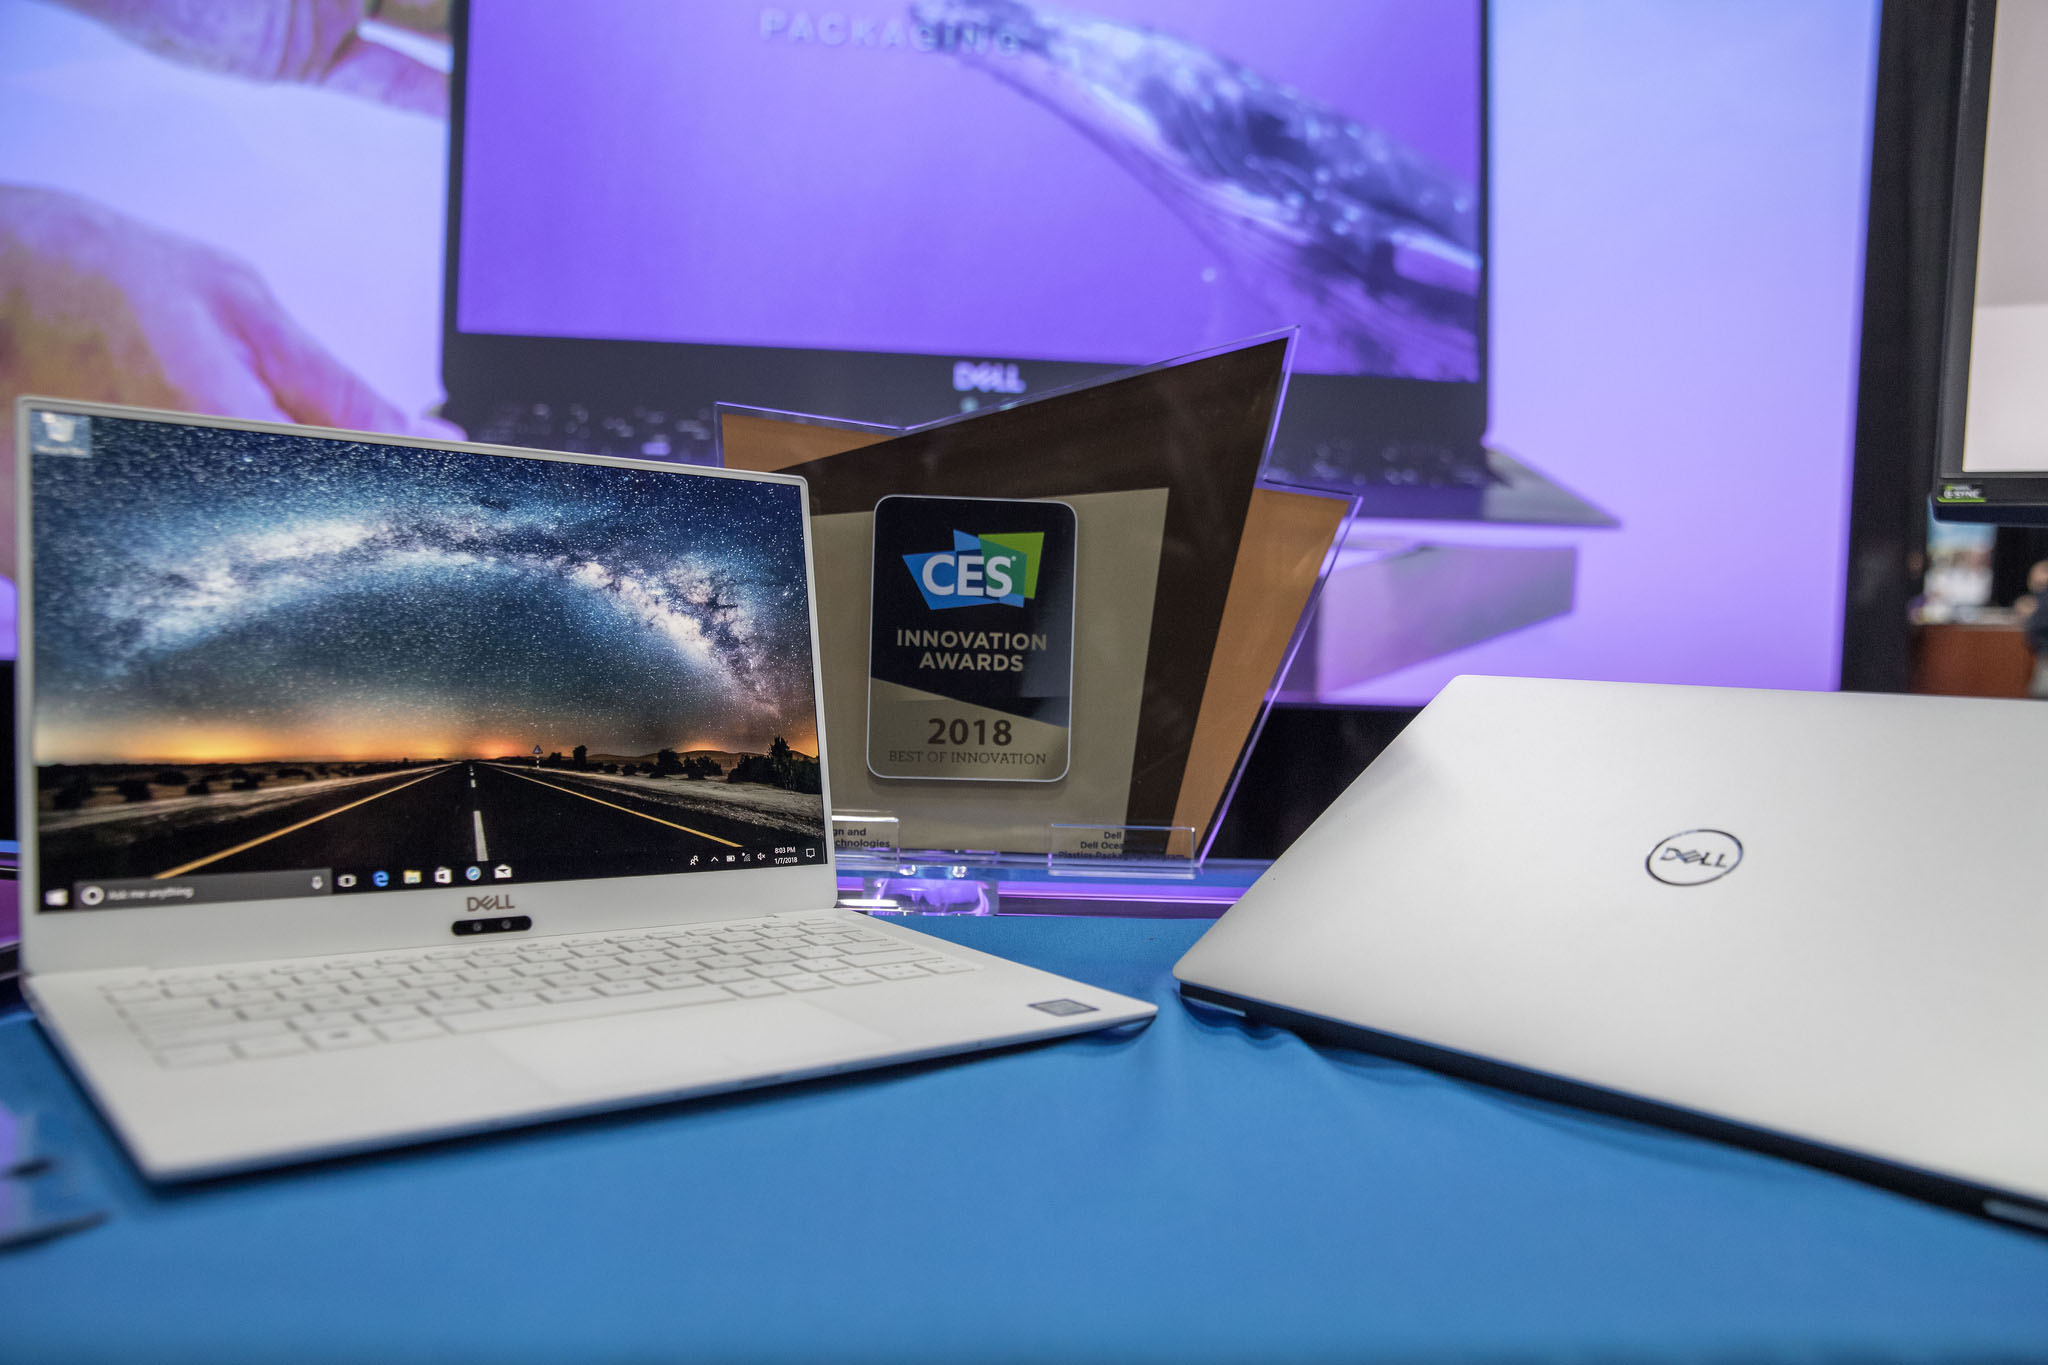 dell, ces 2018, xps 13, laptops, notebooks, infinityedge, xps 15, kaby lake, intel, 8th generation core, processors, amd, radeon, rx vega, dell cinema, alienware, htc vive, inspiron, ultrathin, monitors, s2719dm, s2419hm